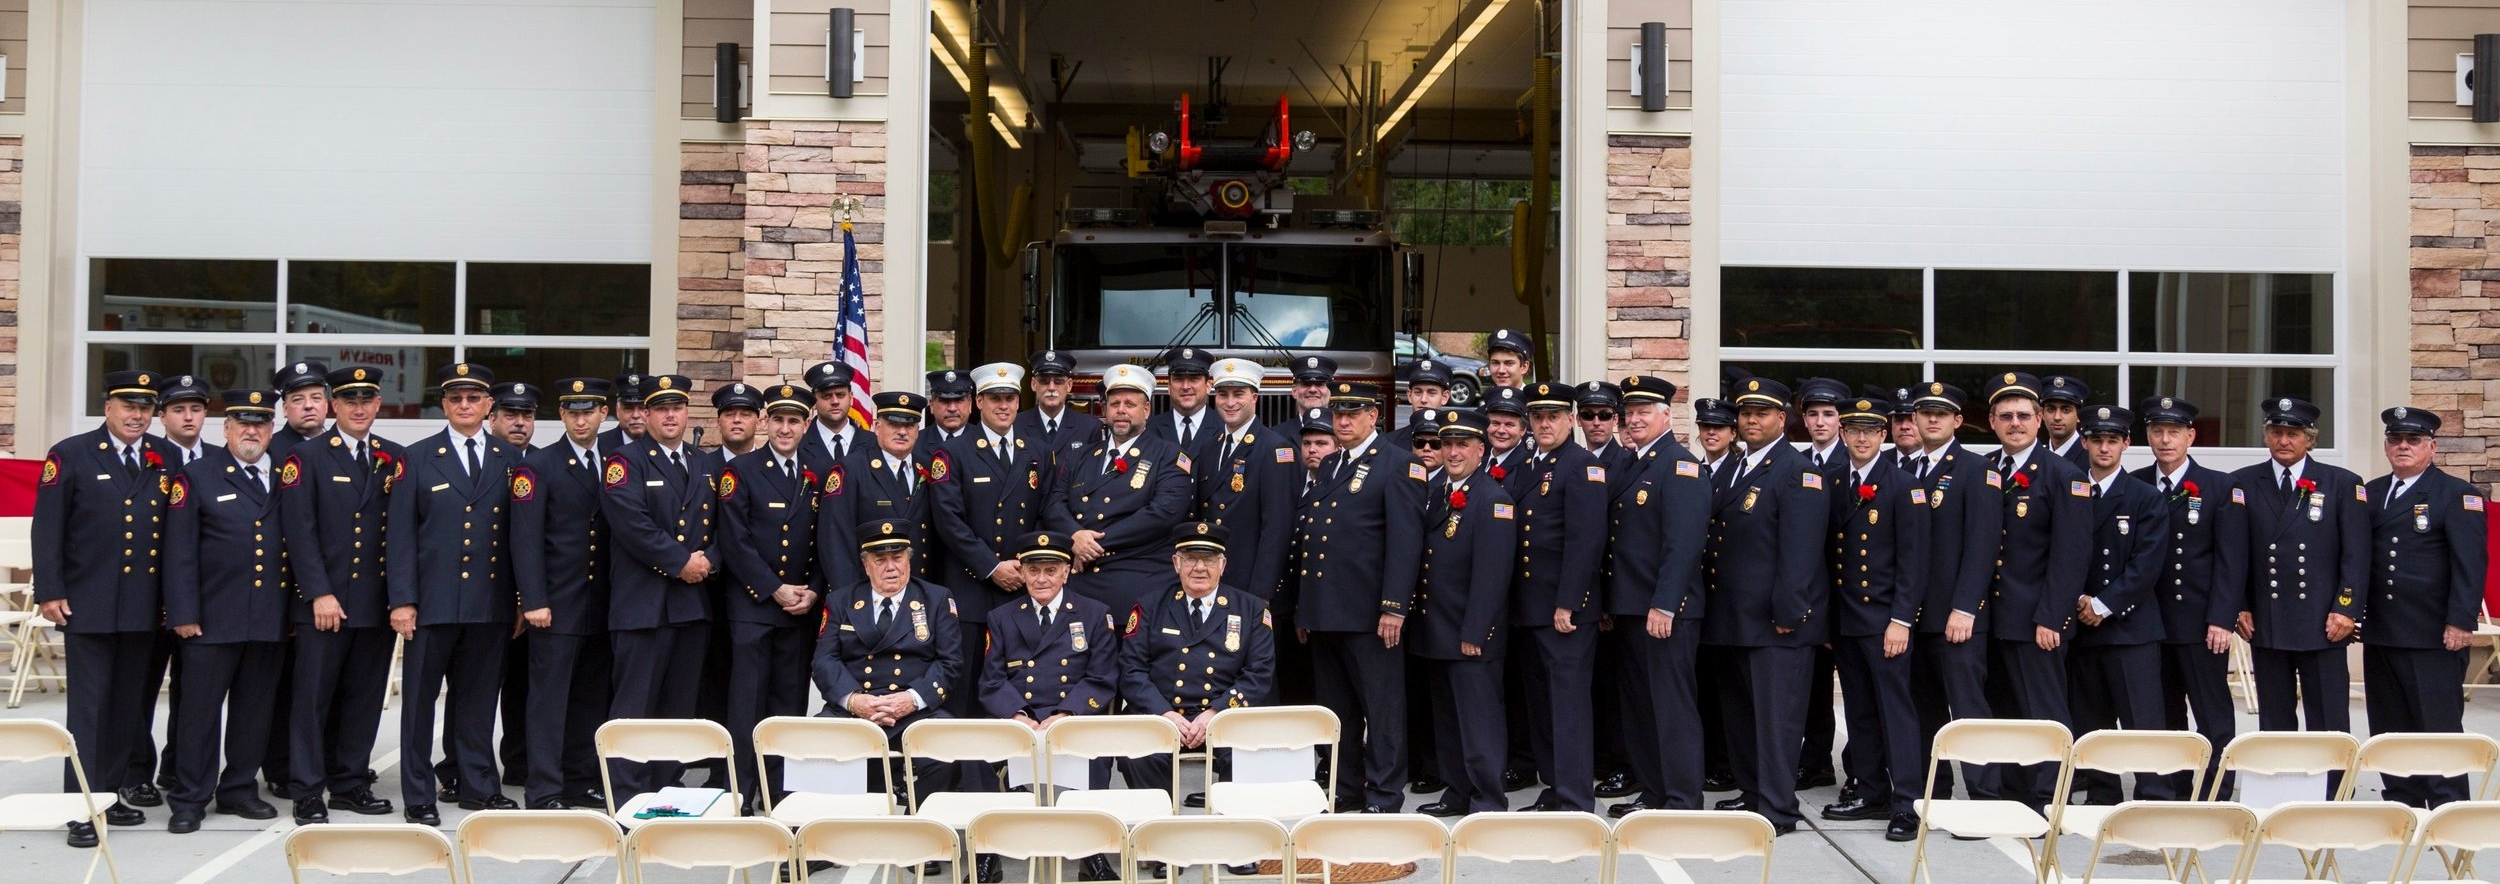 Station2 Ceremony